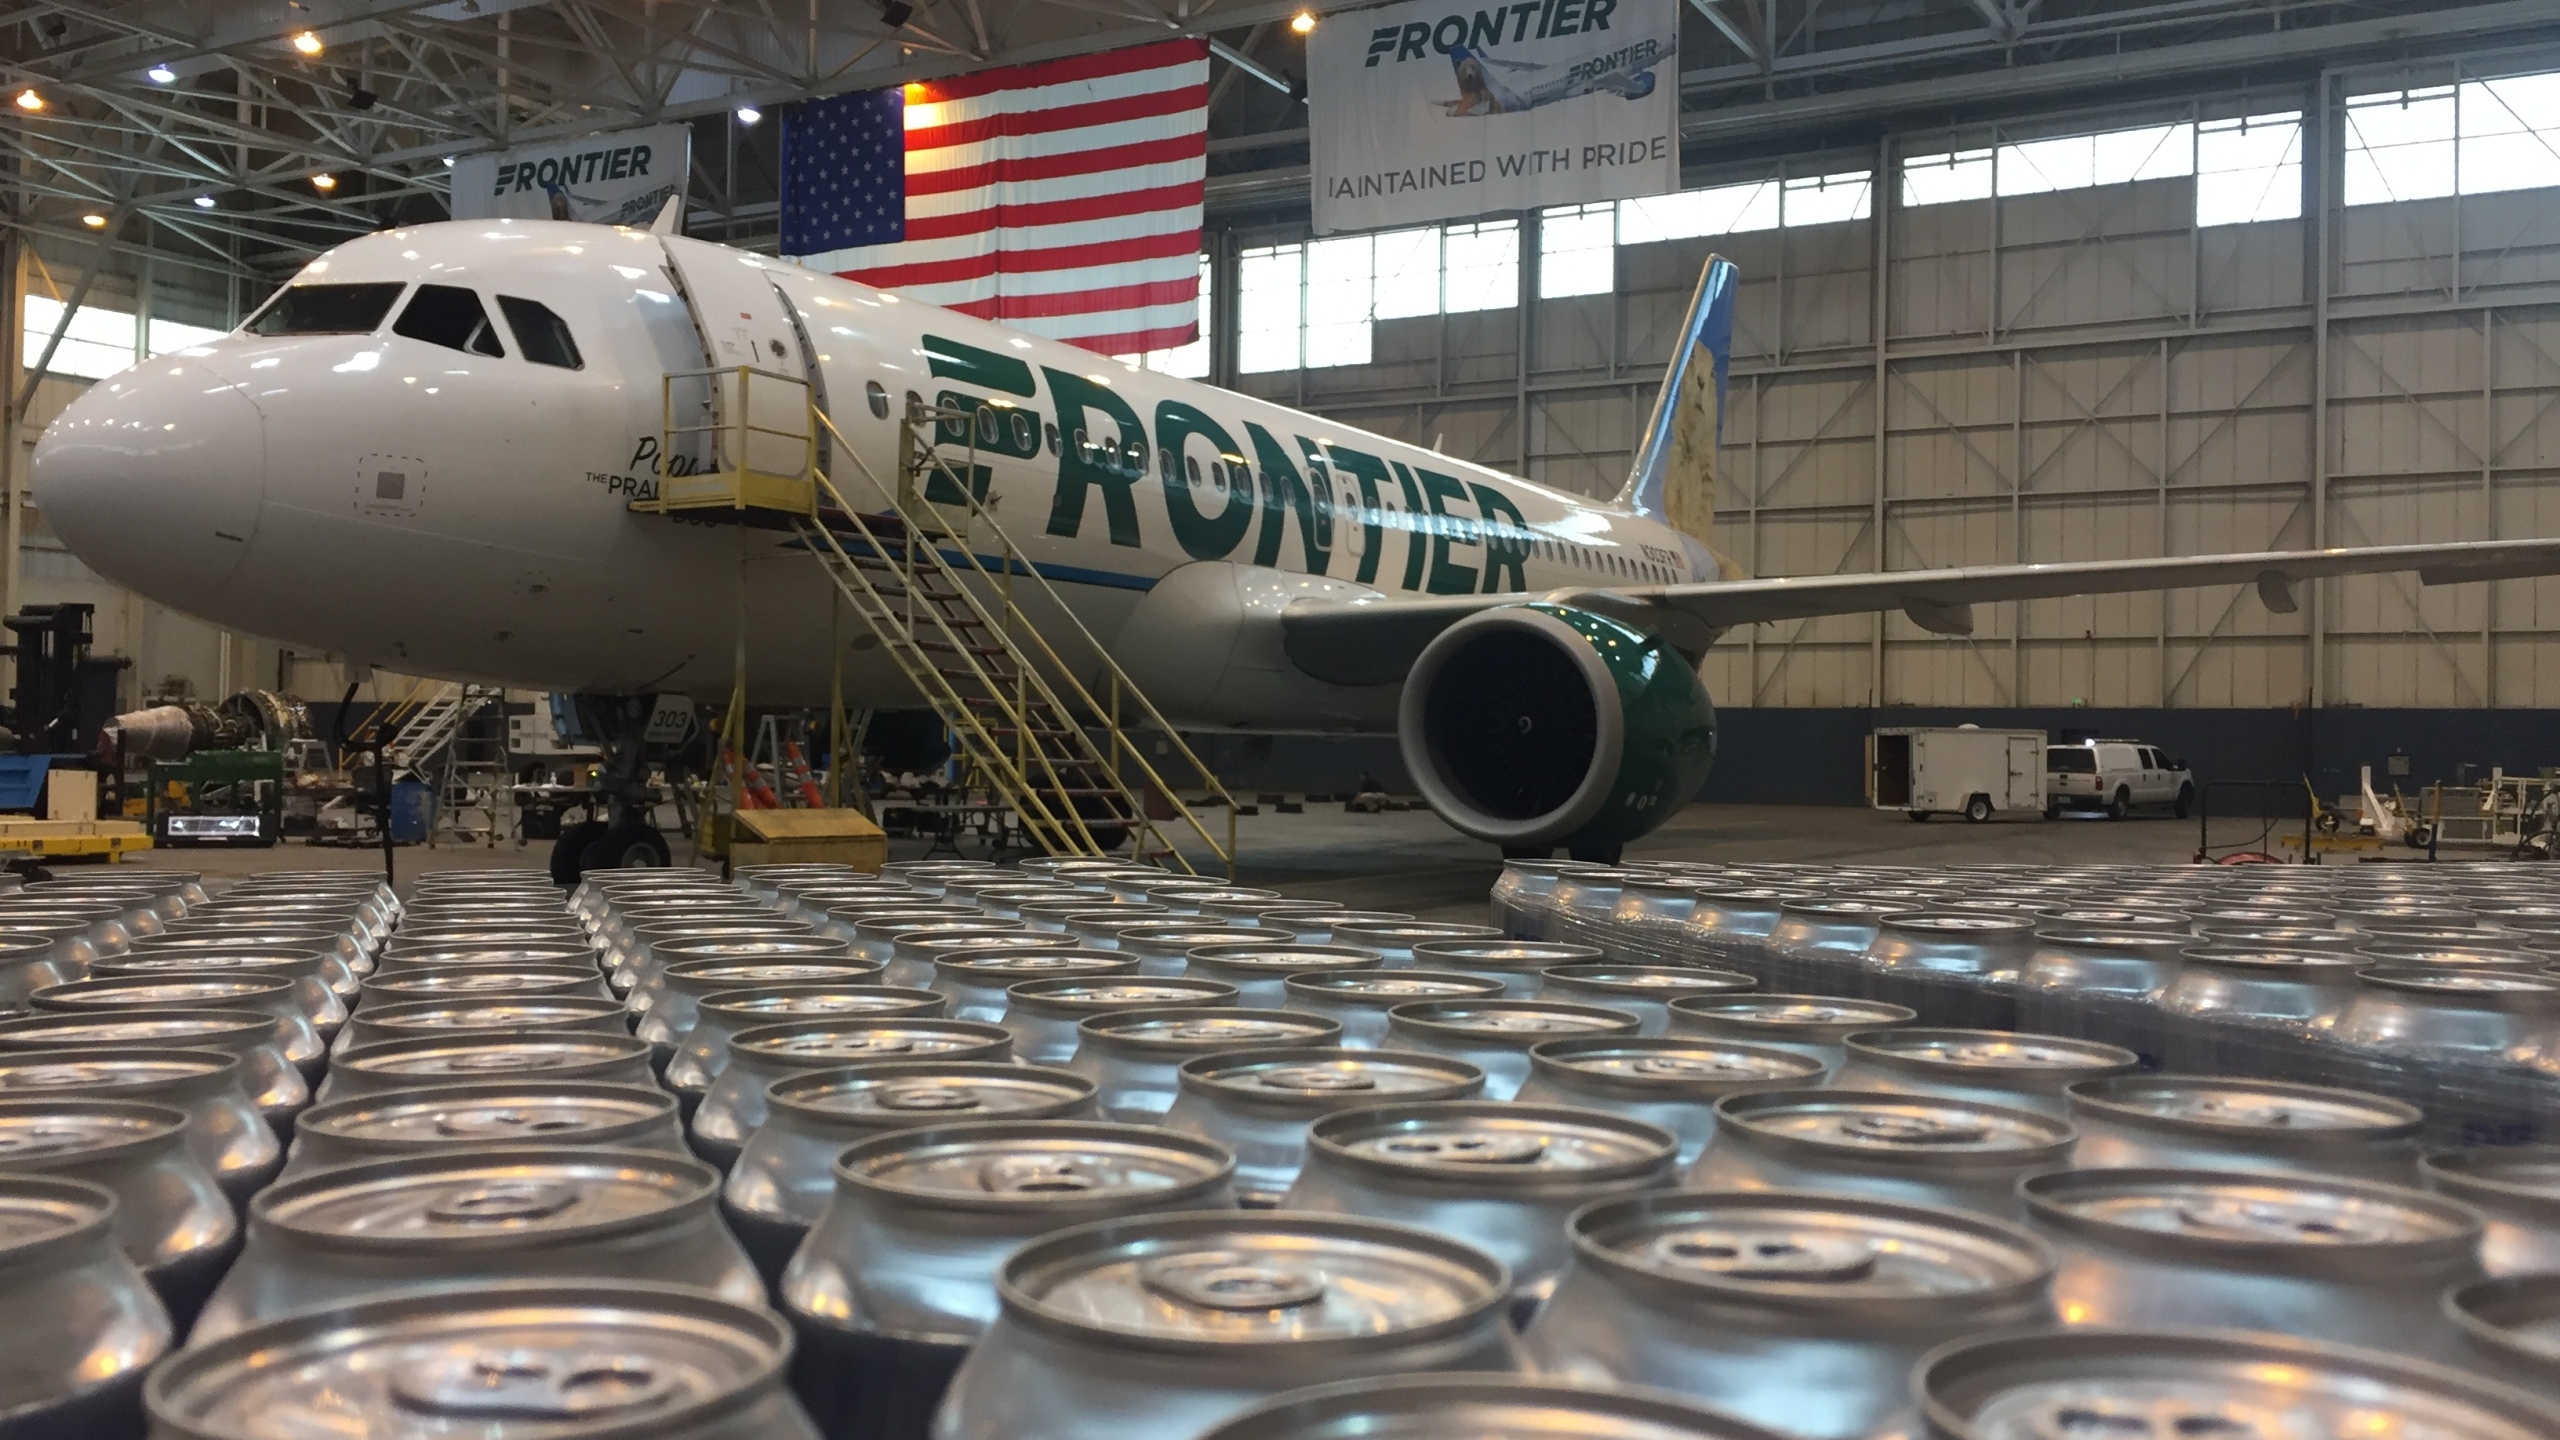 Colorado companies Oskar Blues and Frontier Airlines are teaming up to send canned drinking water to hurricane victims in Puerto Rico. _ Photo _319430